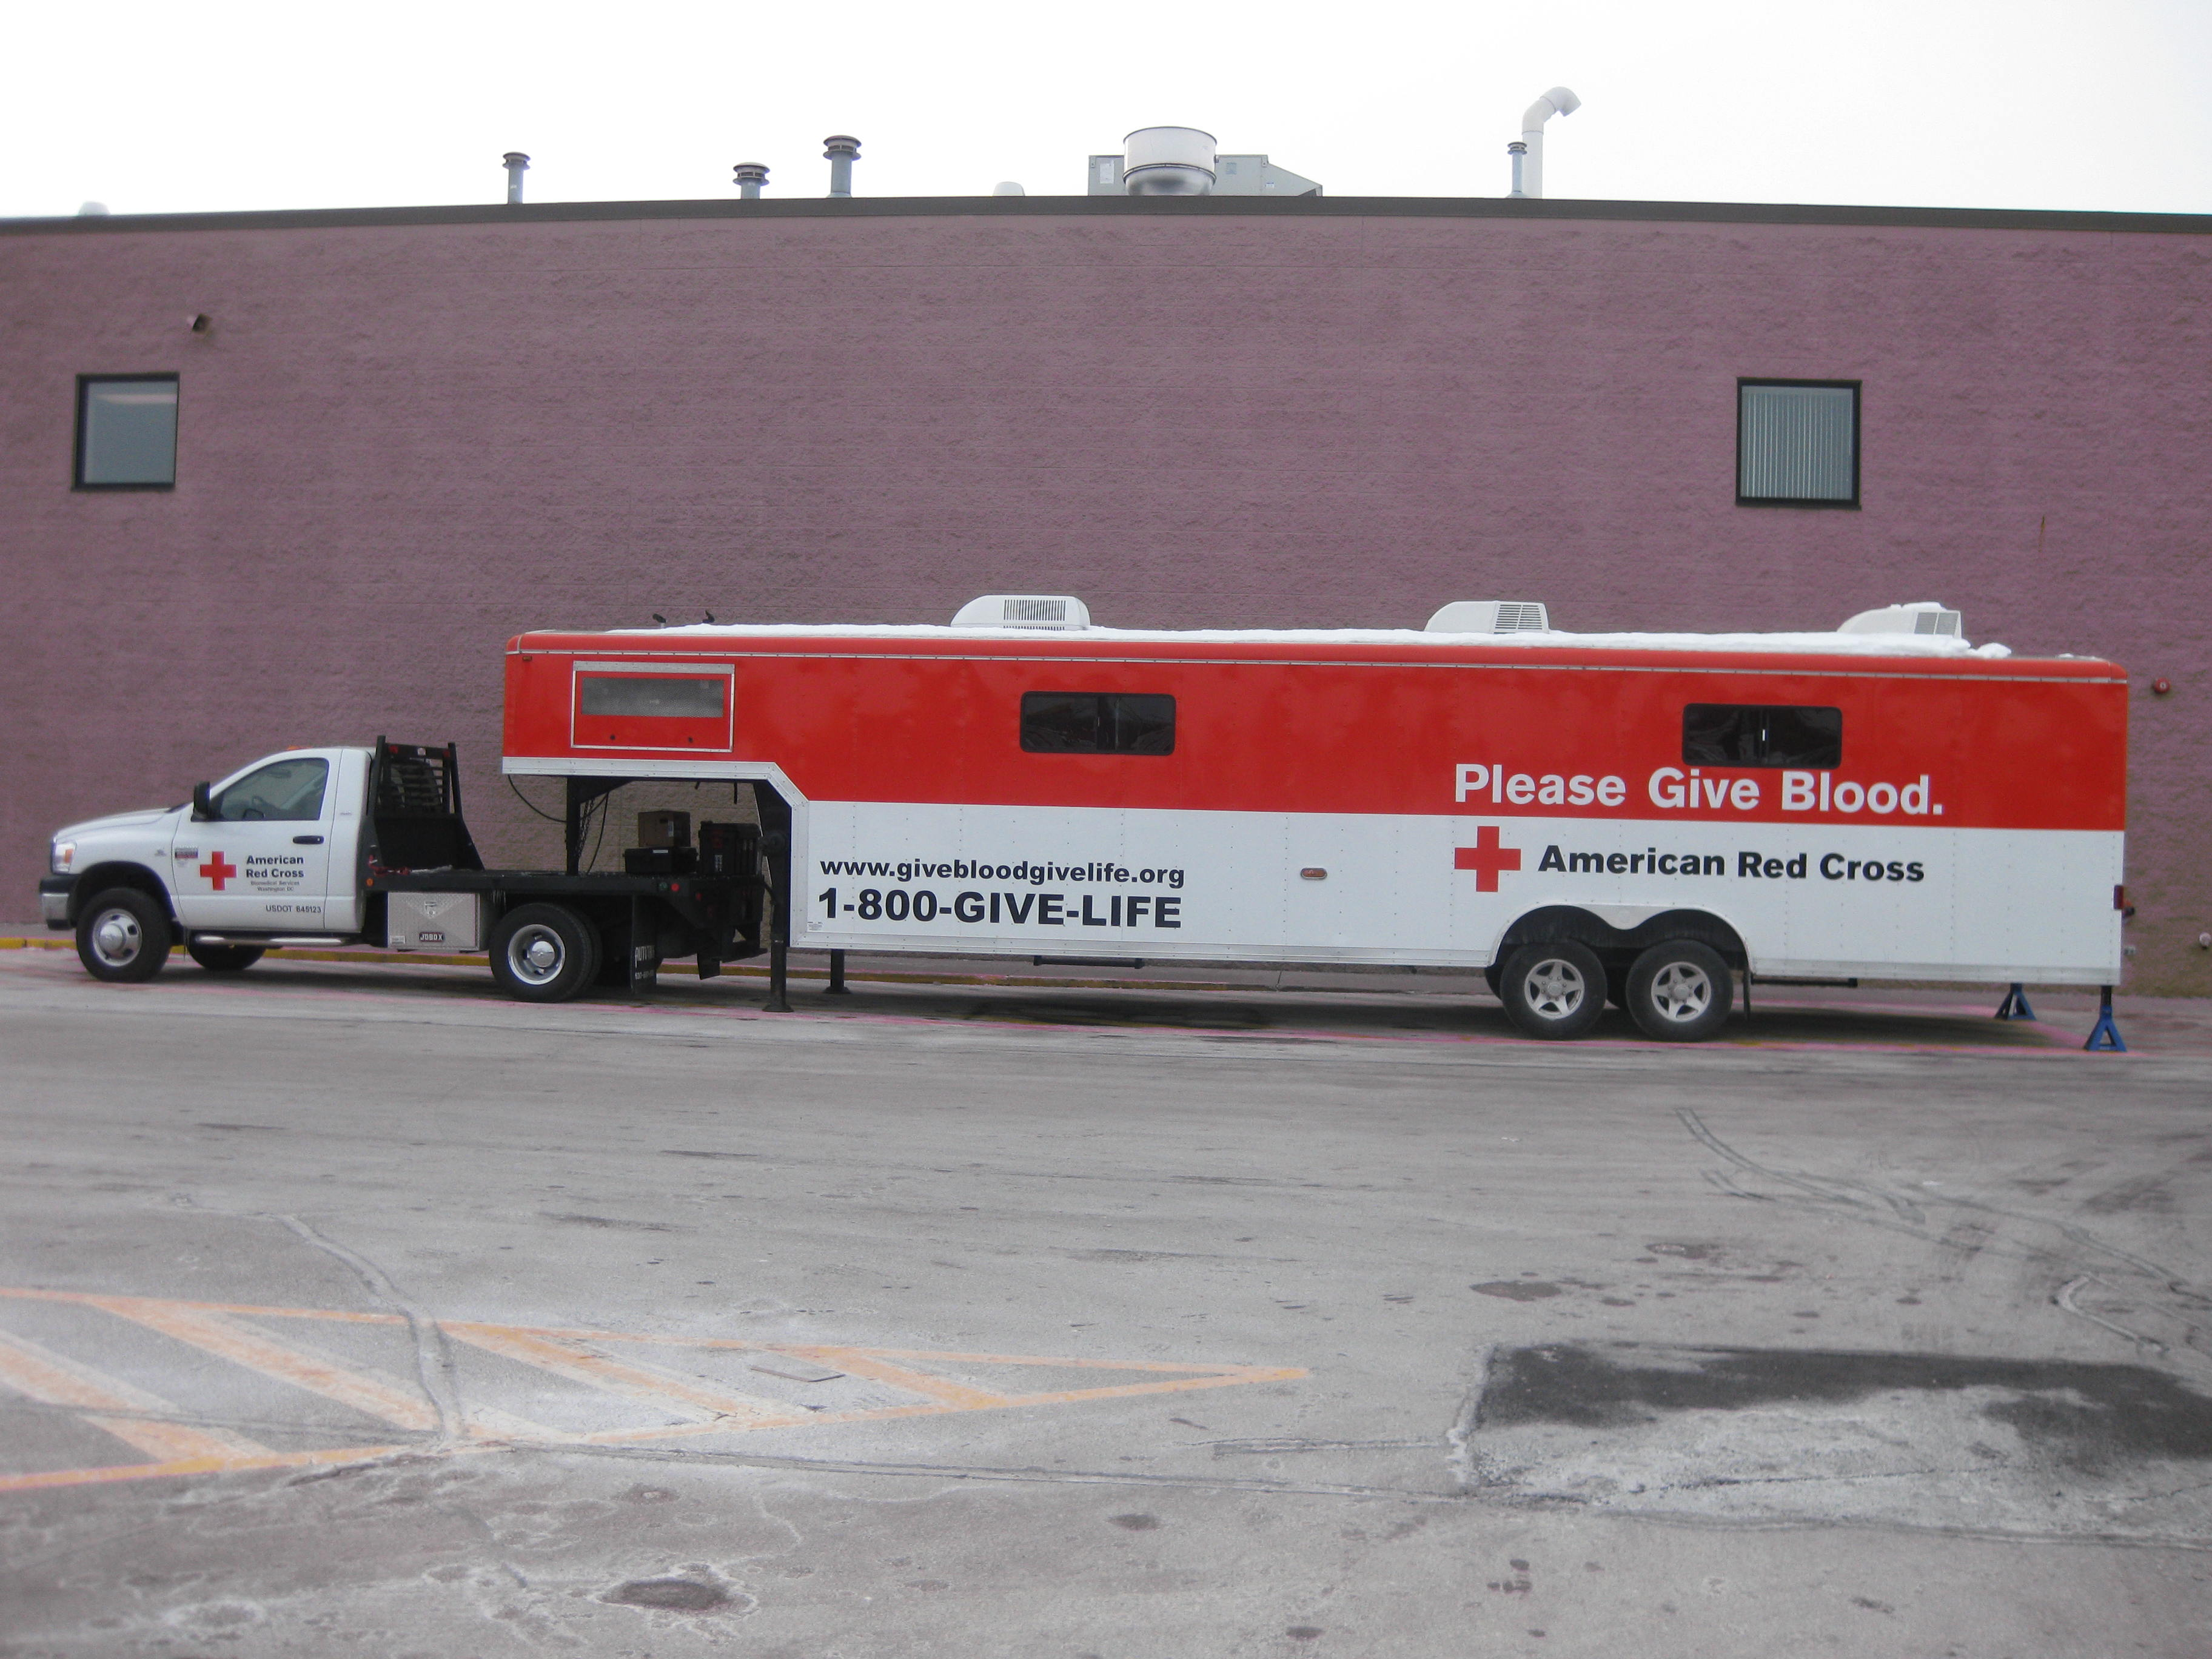 Festival Foods In DePere Is Hosting A Blood Drive From 900am 200pm For The General Public American Red Cross Donor Coach Will Be Parked